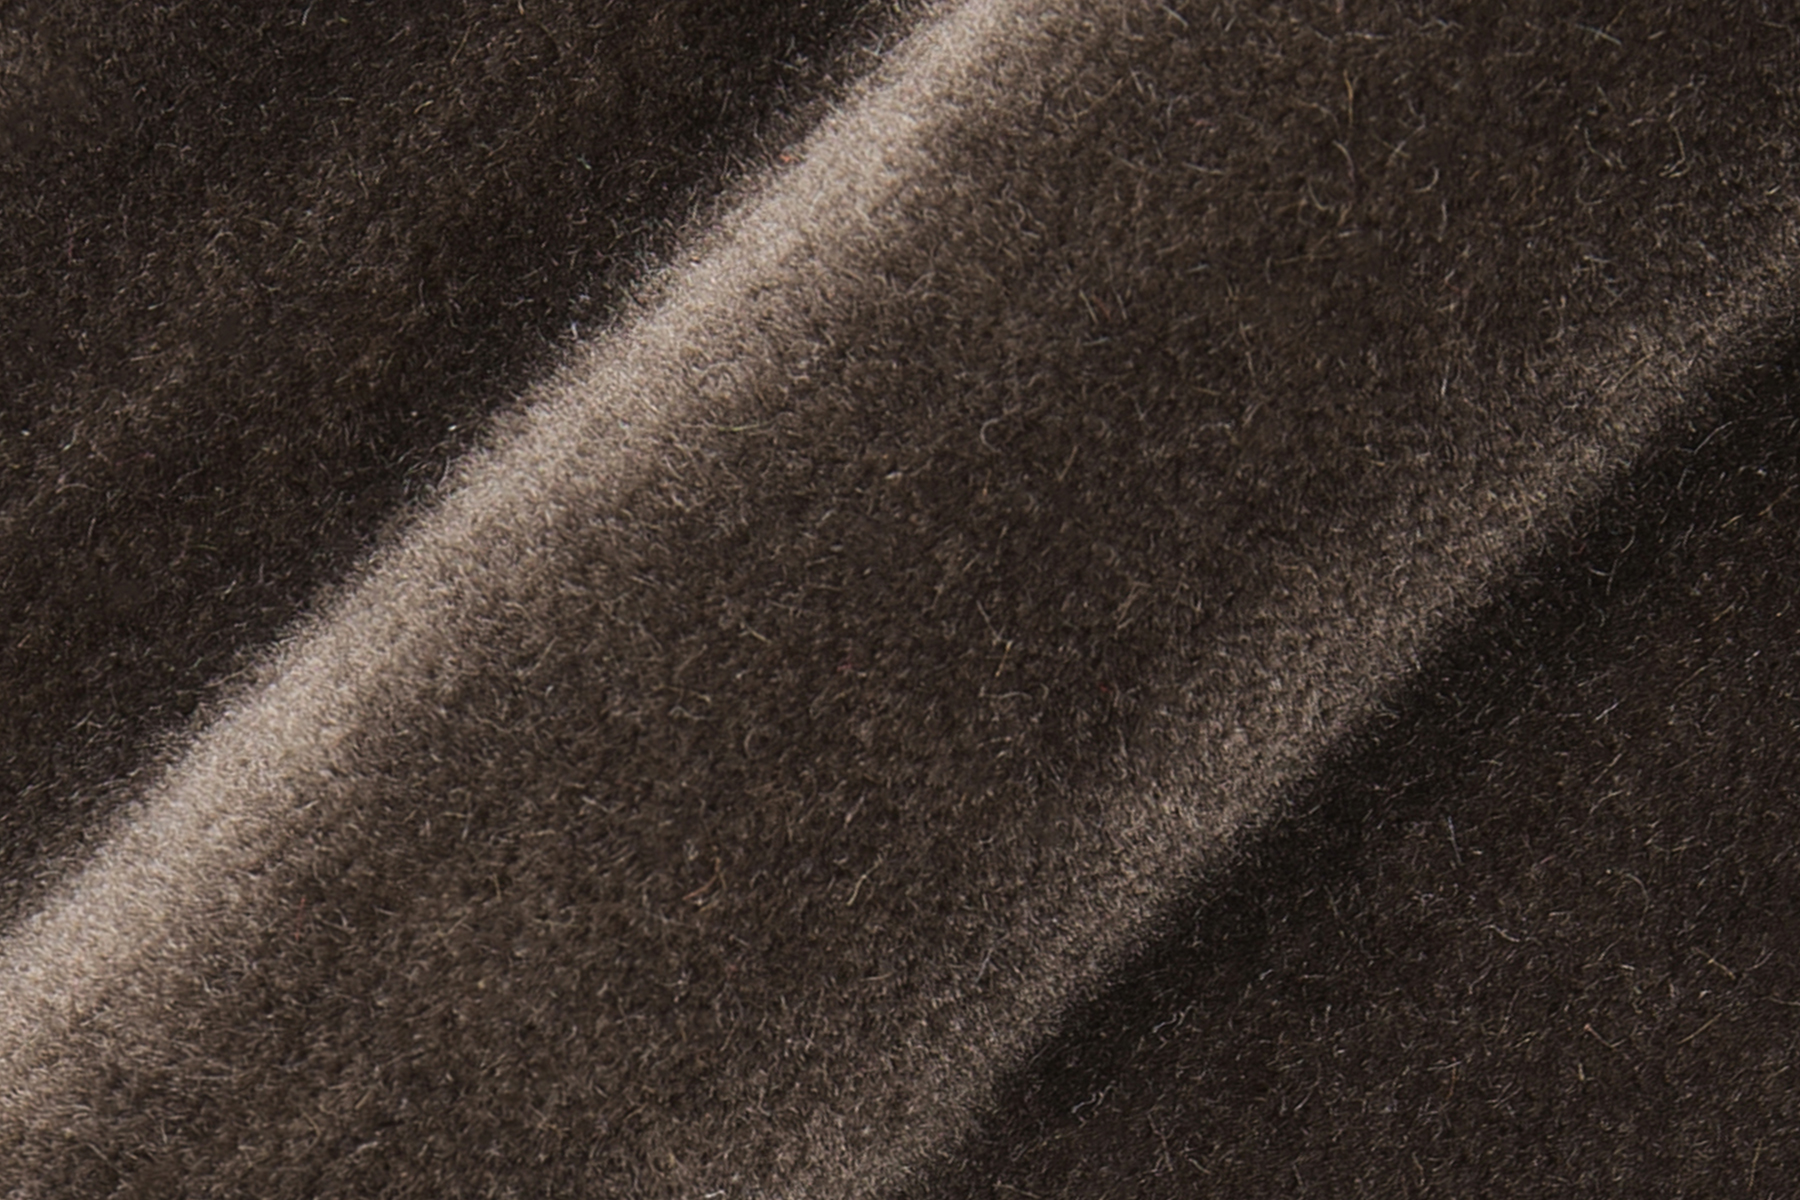 LUX VELVET 0895 HAZEL NUT Fabric by KOKET